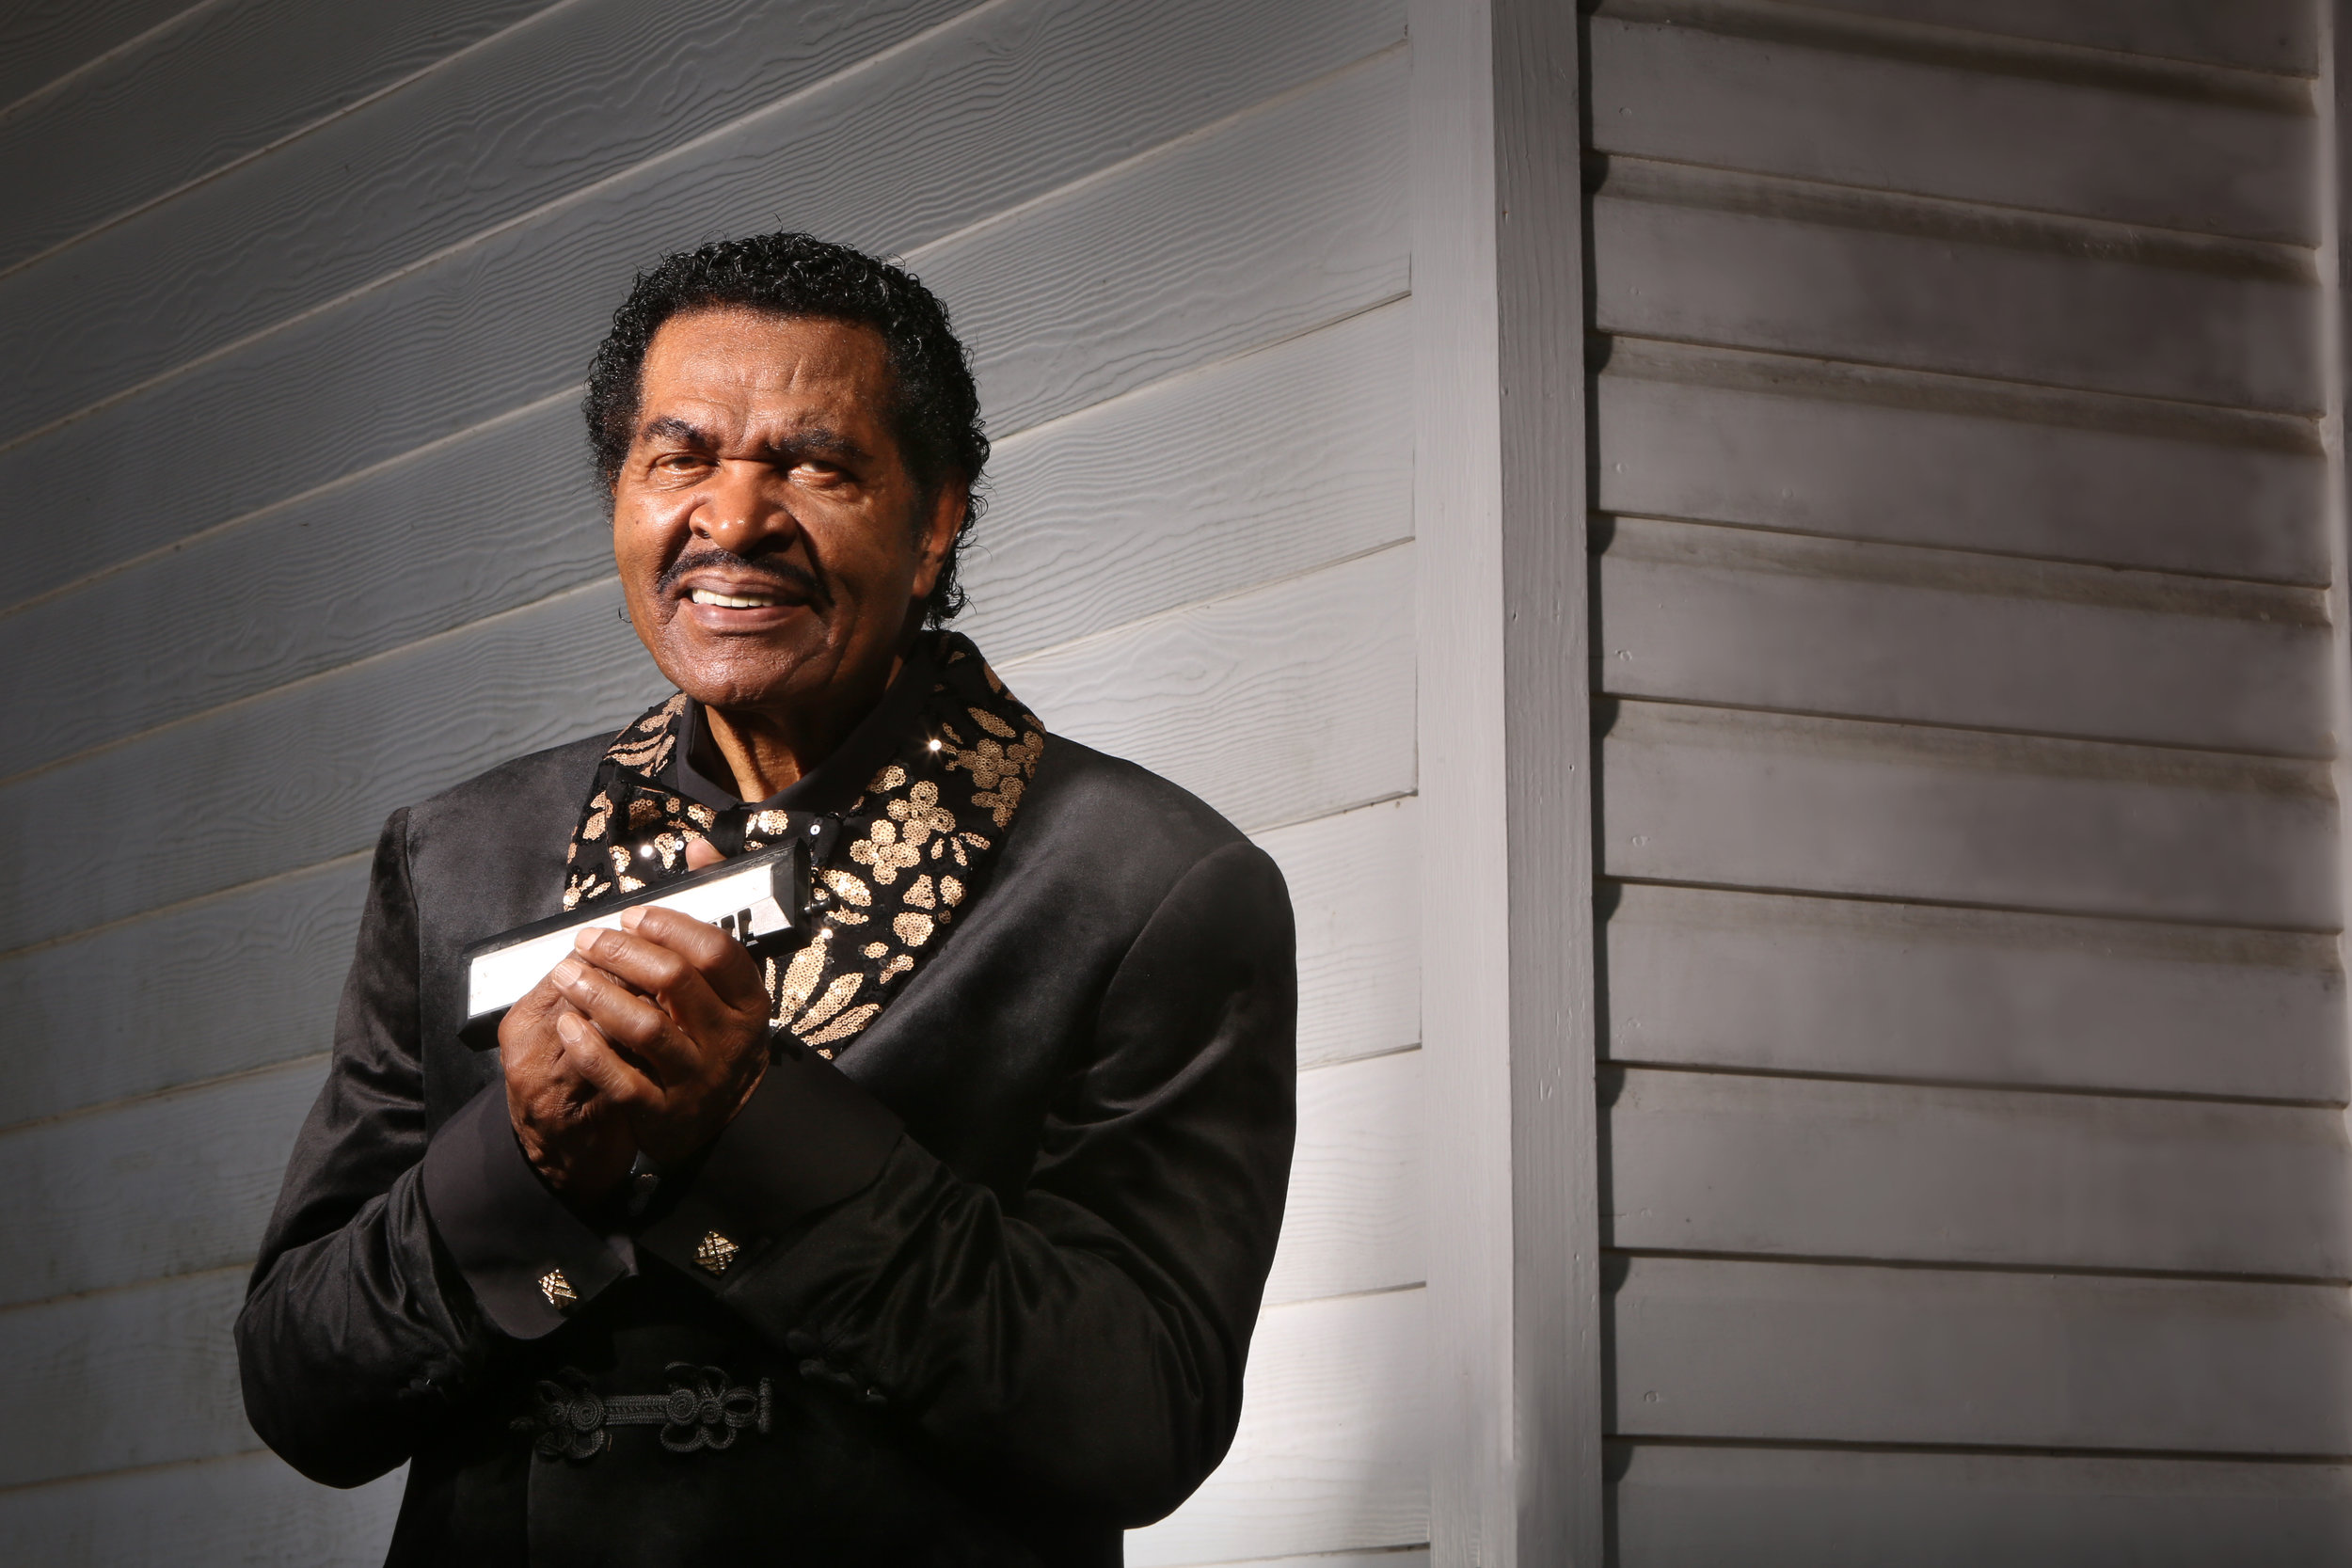 Bobby Rush Promo 1 - By Bill Steber.jpg